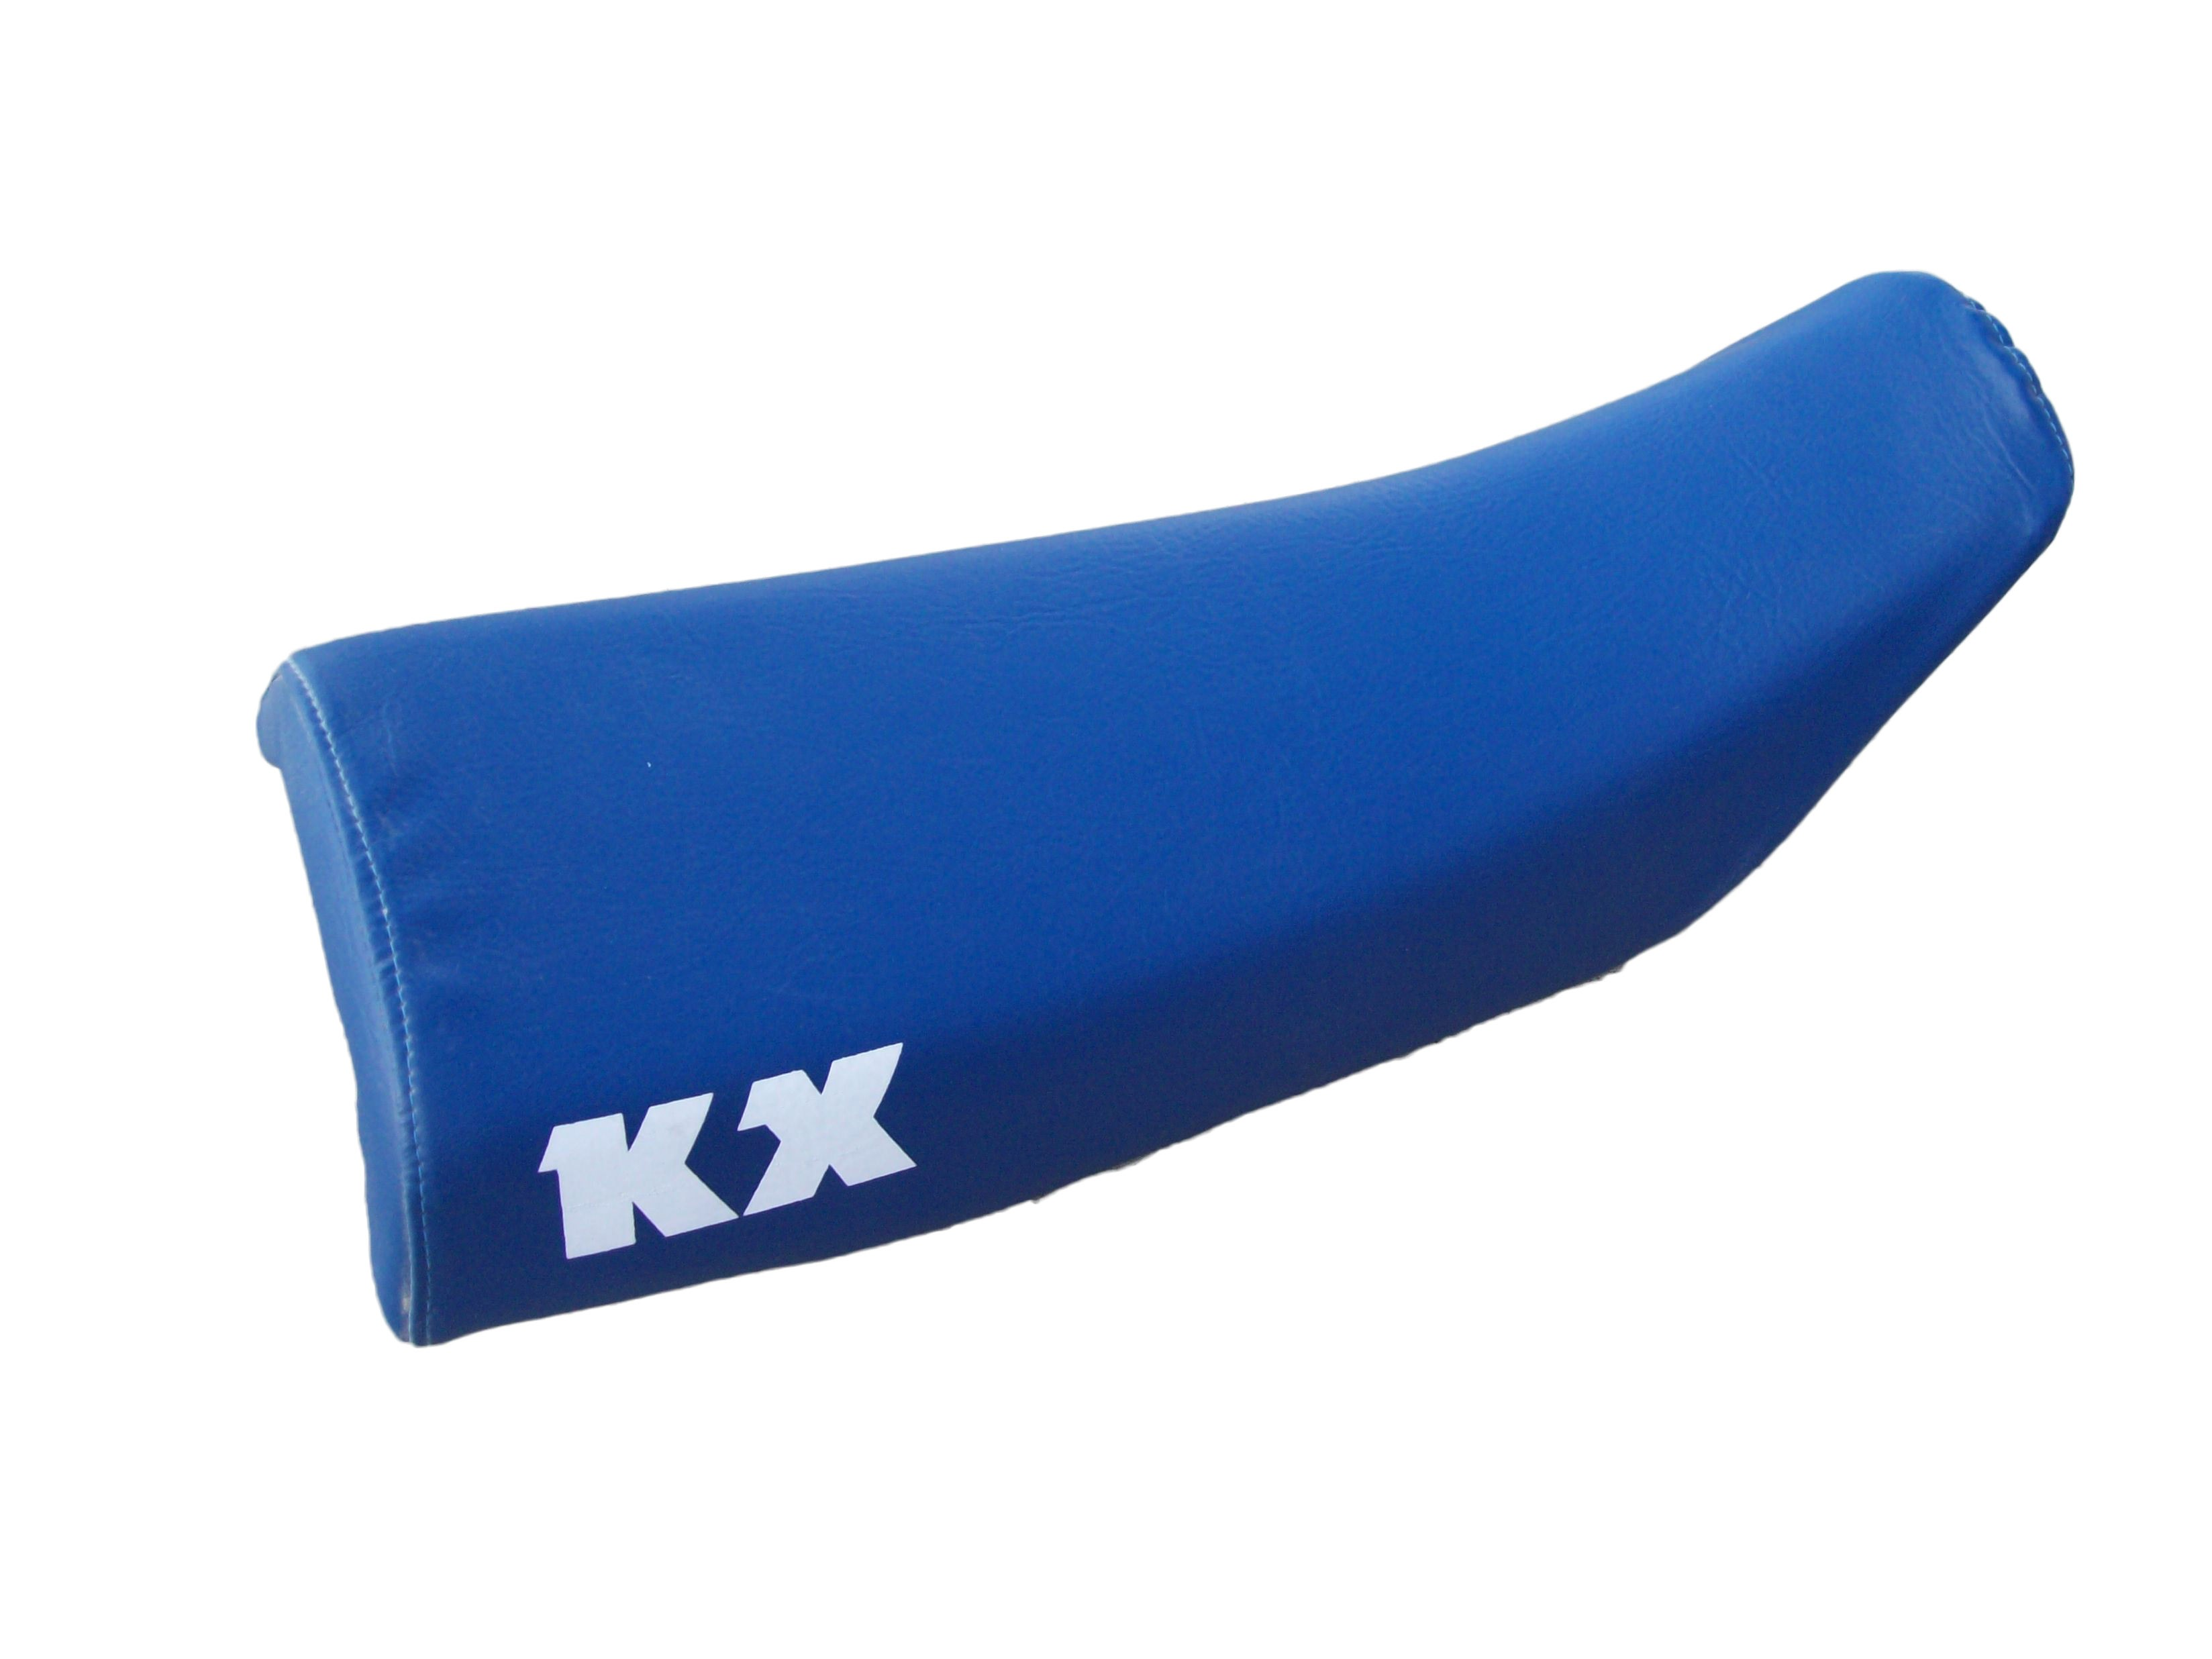 1983-1985 Kawasaki KX 80 Seat Cover